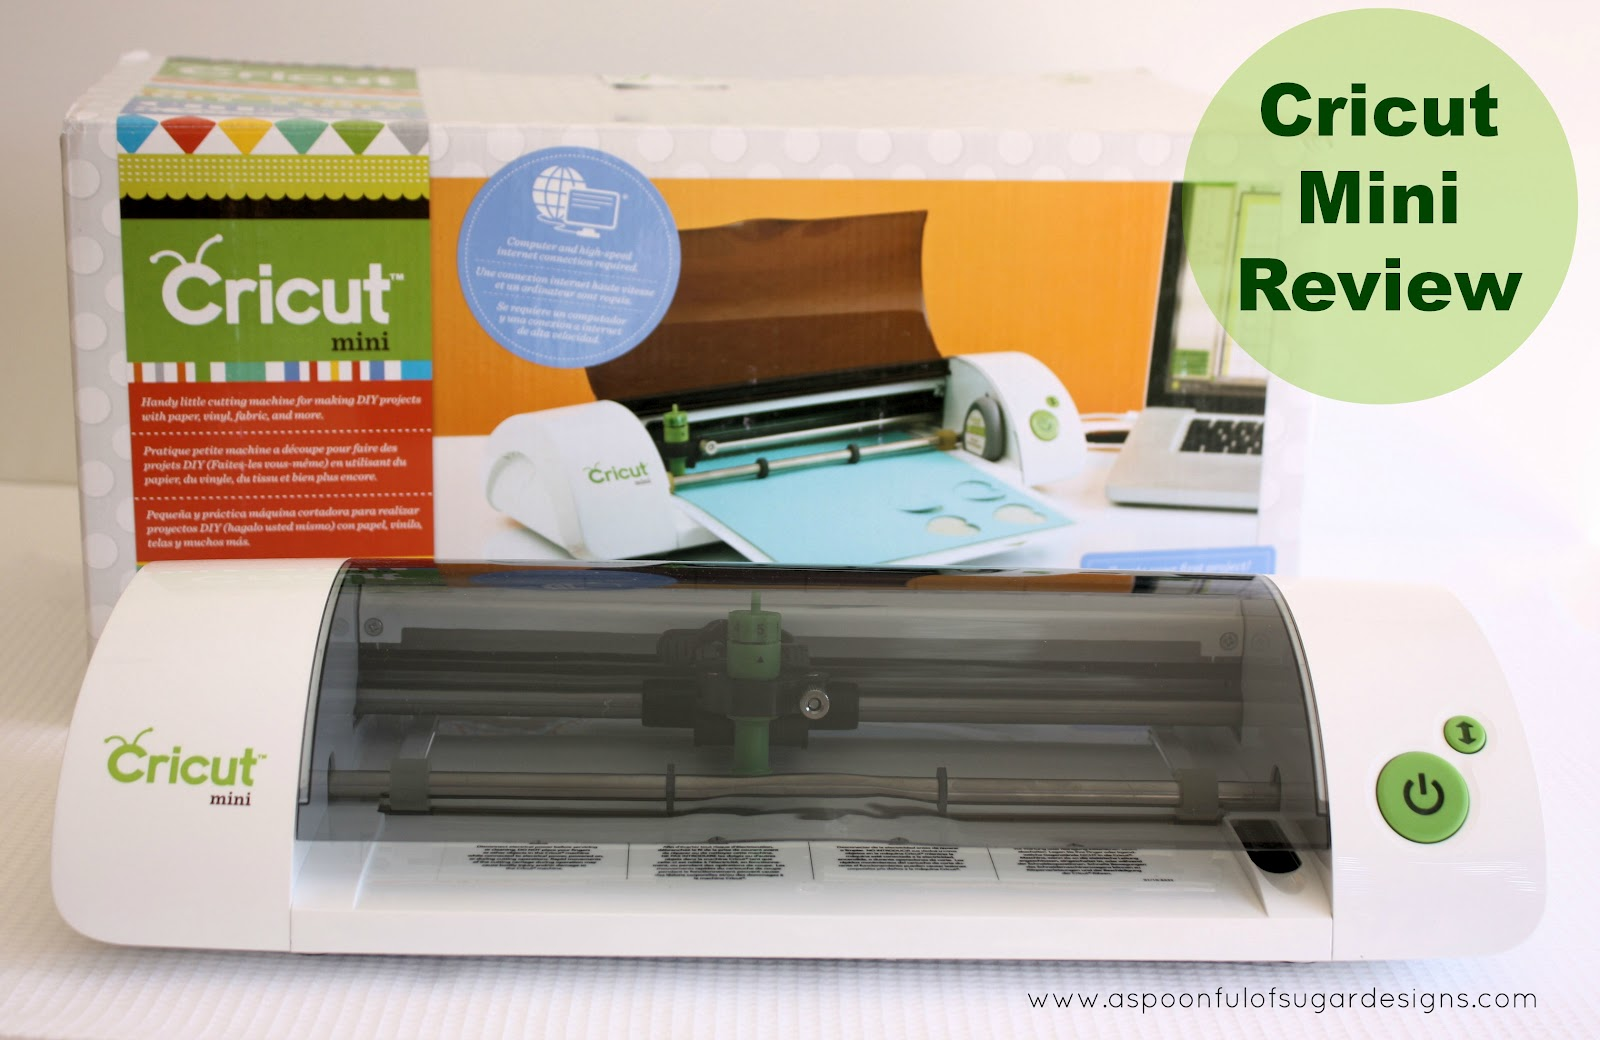 need cards and gift packaging in a hurry a spoonful of sugar rh aspoonfulofsugardesigns com Cricut Owner's Manual cricut mini instruction manual